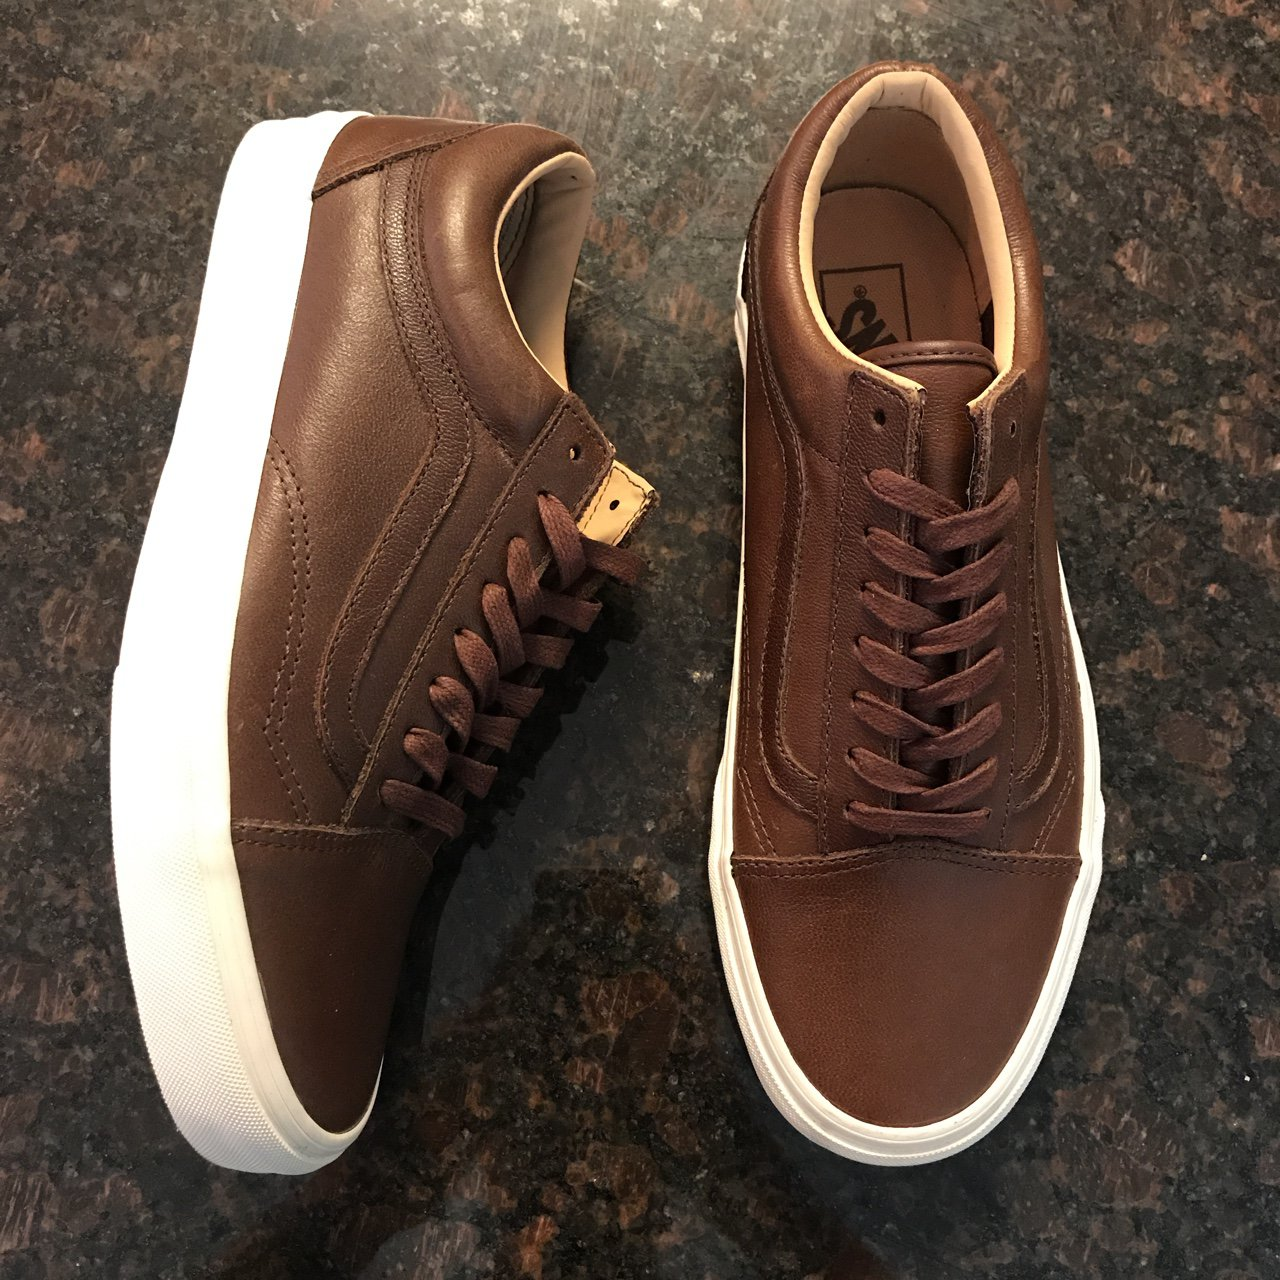 64ba84a969 Vans Old Skool Lux Leather Shaved Chocolate Porcini Men s sz - Depop